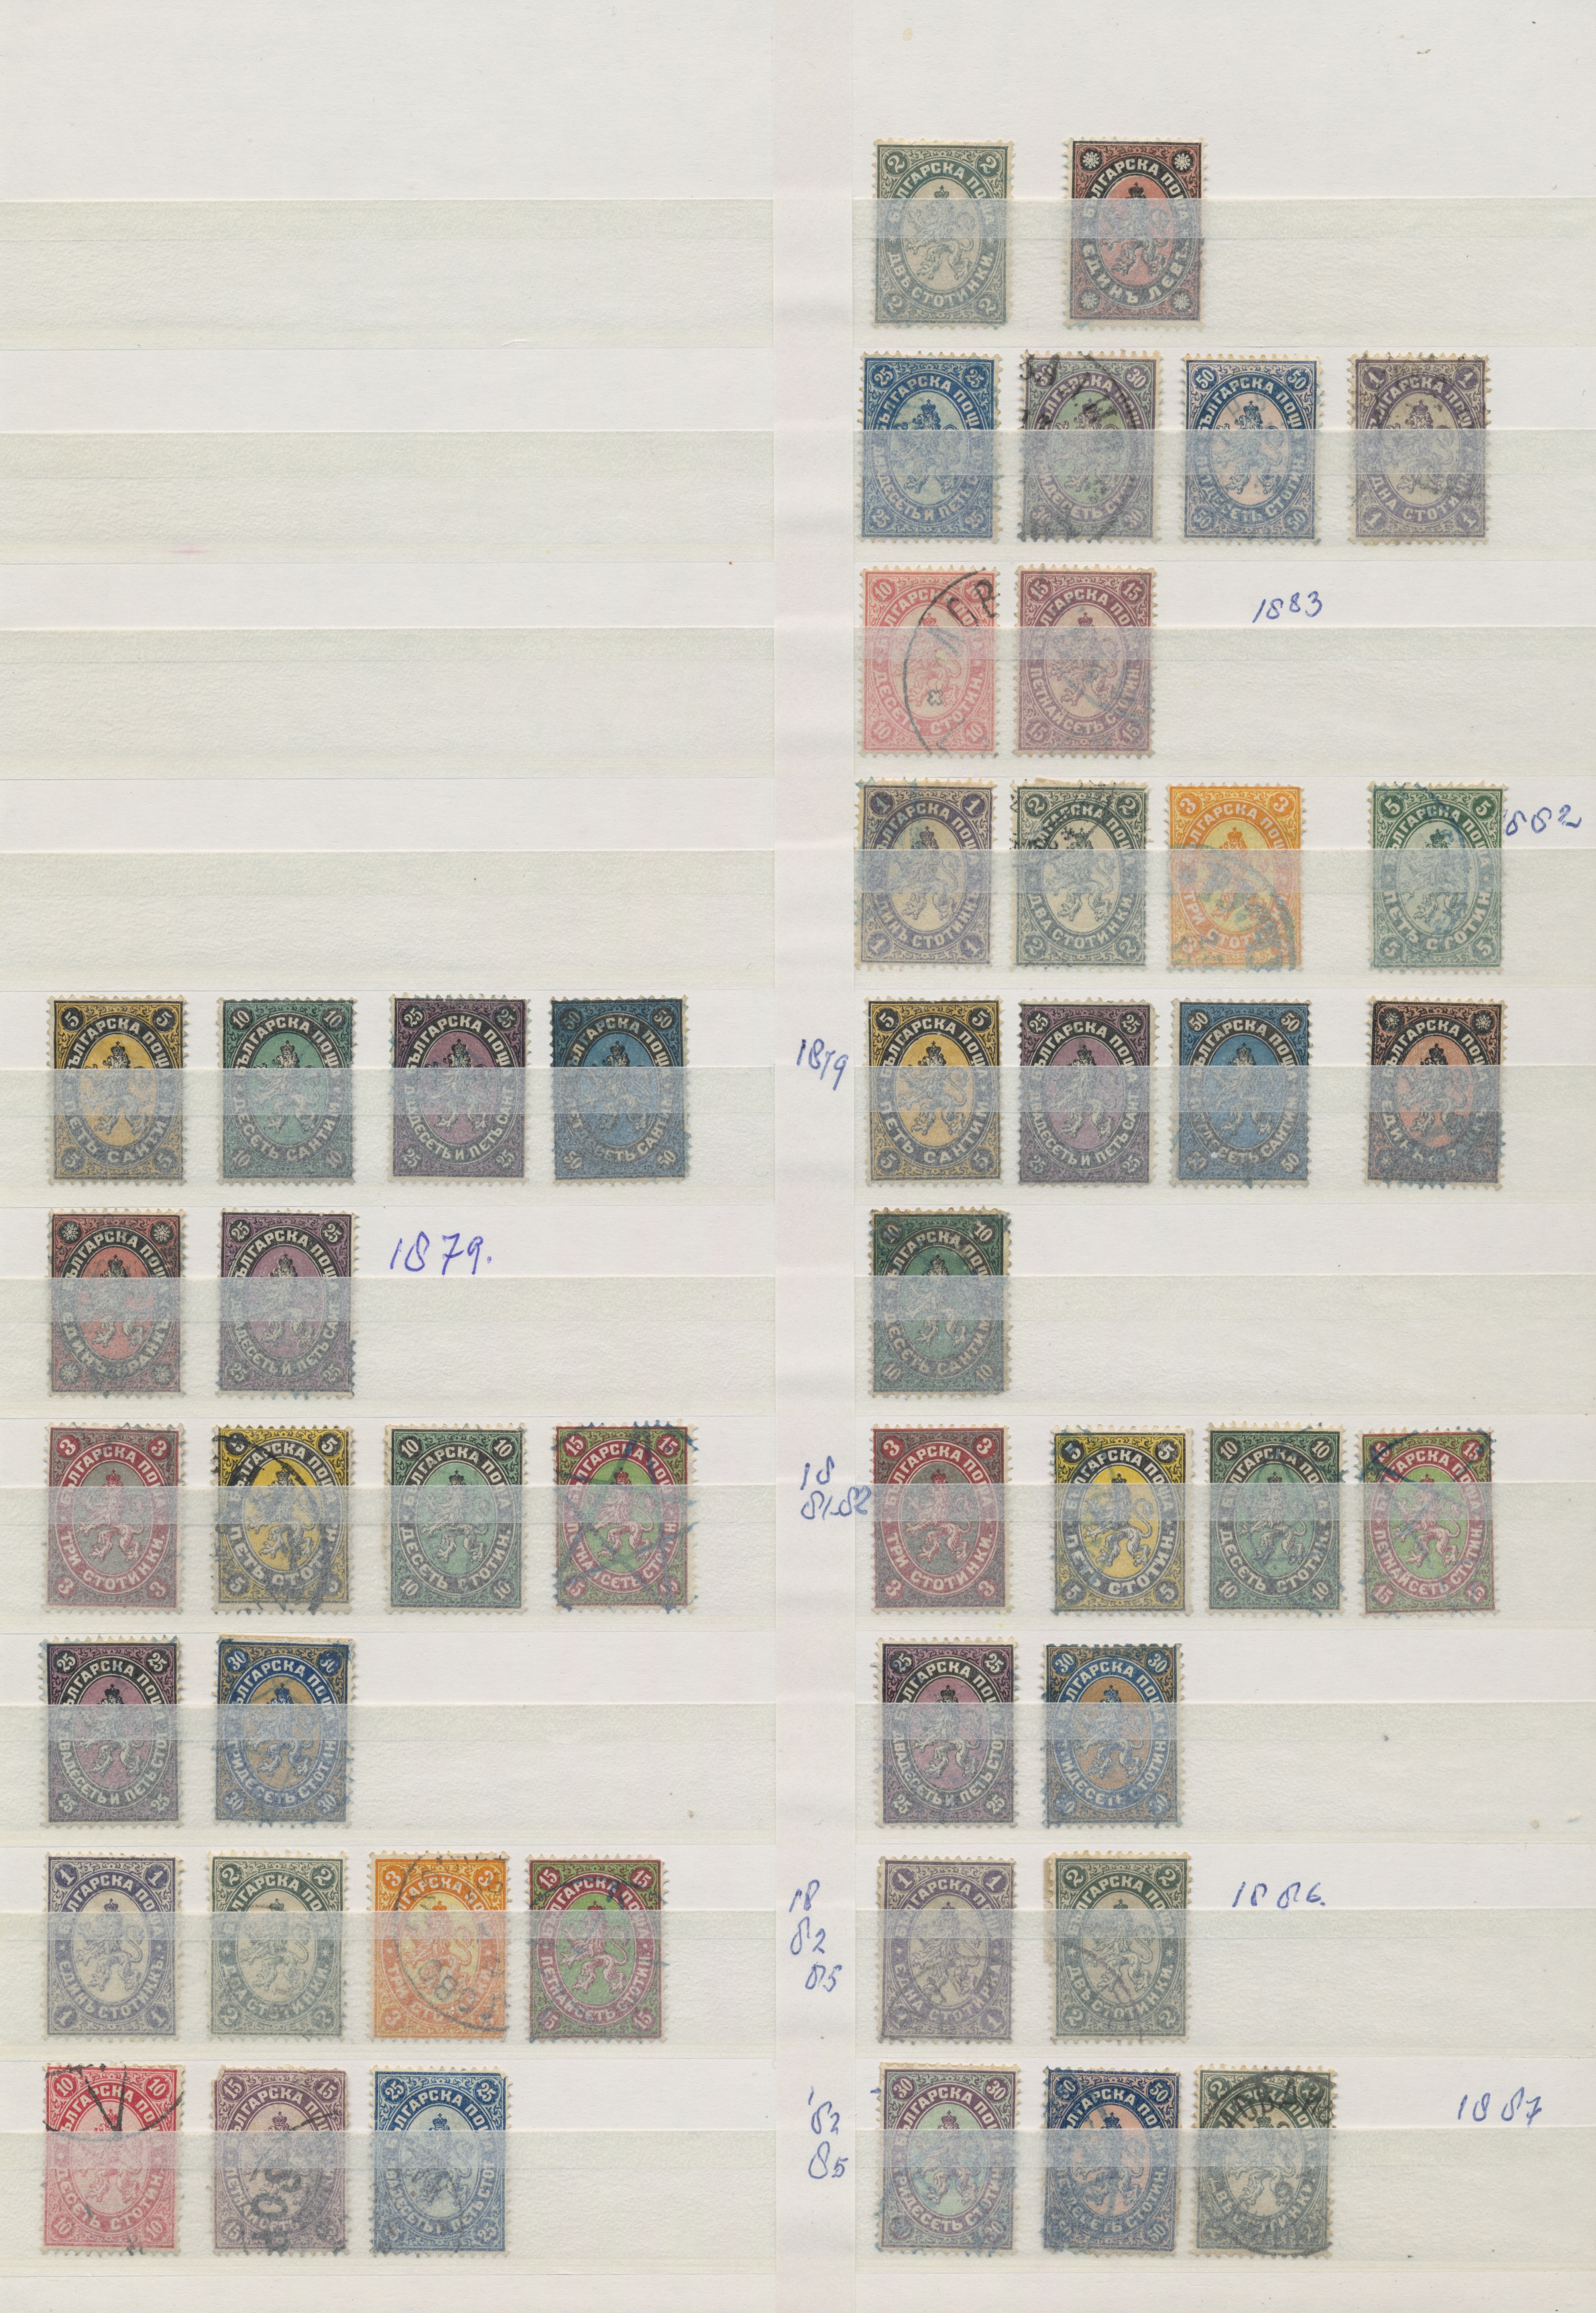 Lot 16742 - bulgarien  -  Auktionshaus Christoph Gärtner GmbH & Co. KG Sale #48 collections Overseas  Airmail / Ship mail & Thematics